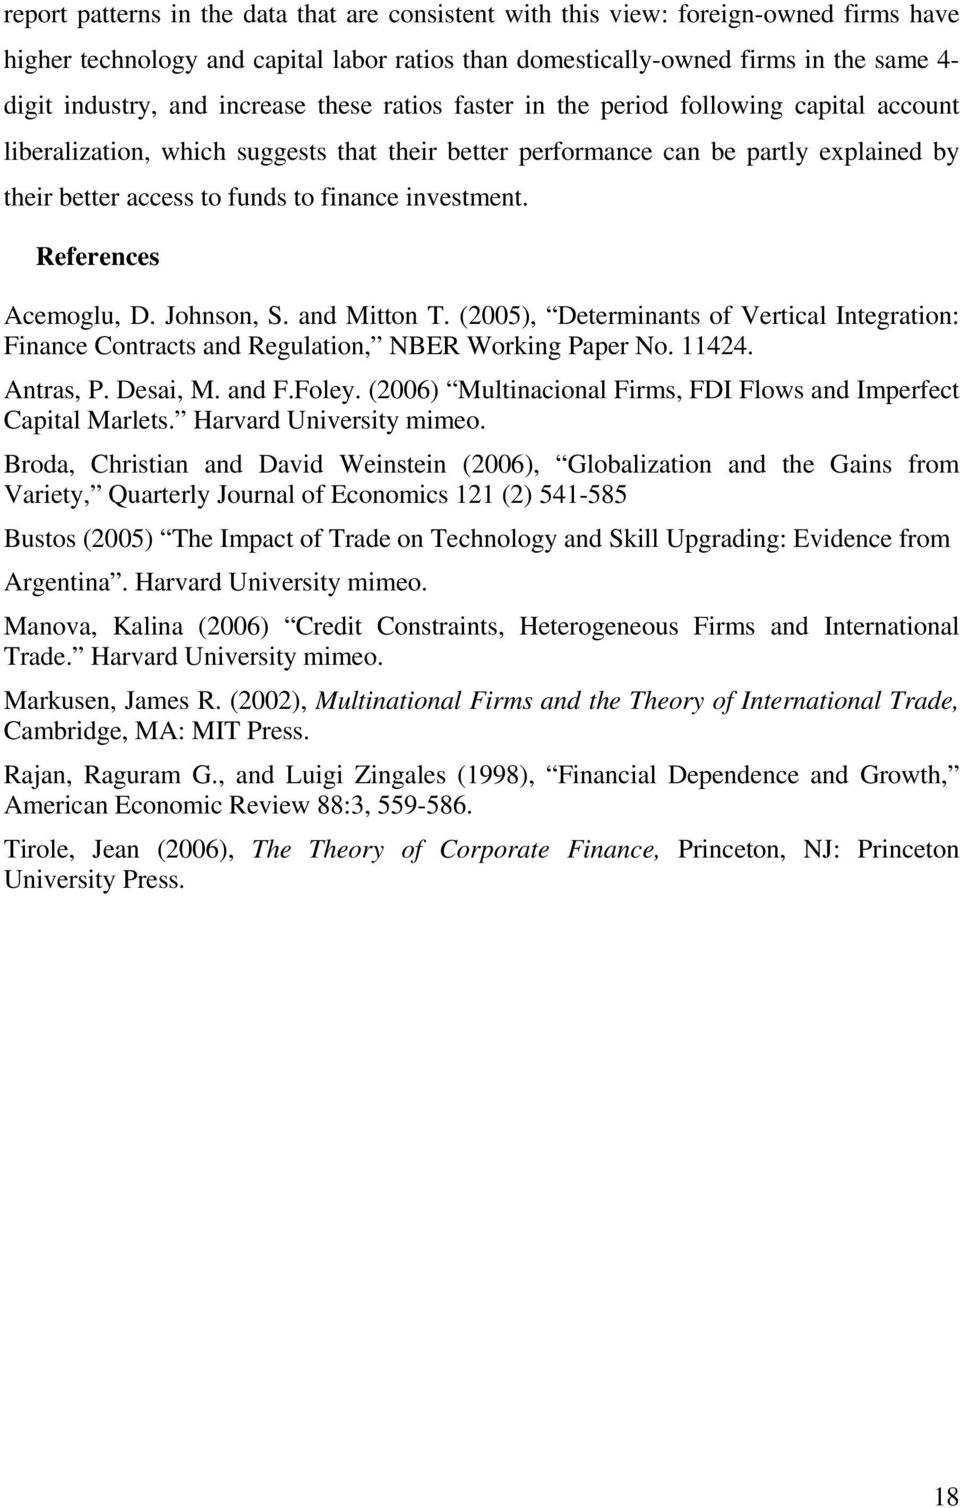 investment. References Acemoglu, D. Johnson, S. and Mitton T. (2005), Determinants of Vertical Integration: Finance Contracts and Regulation, NBER Working Paper No. 11424. Antras, P. Desai, M. and F.